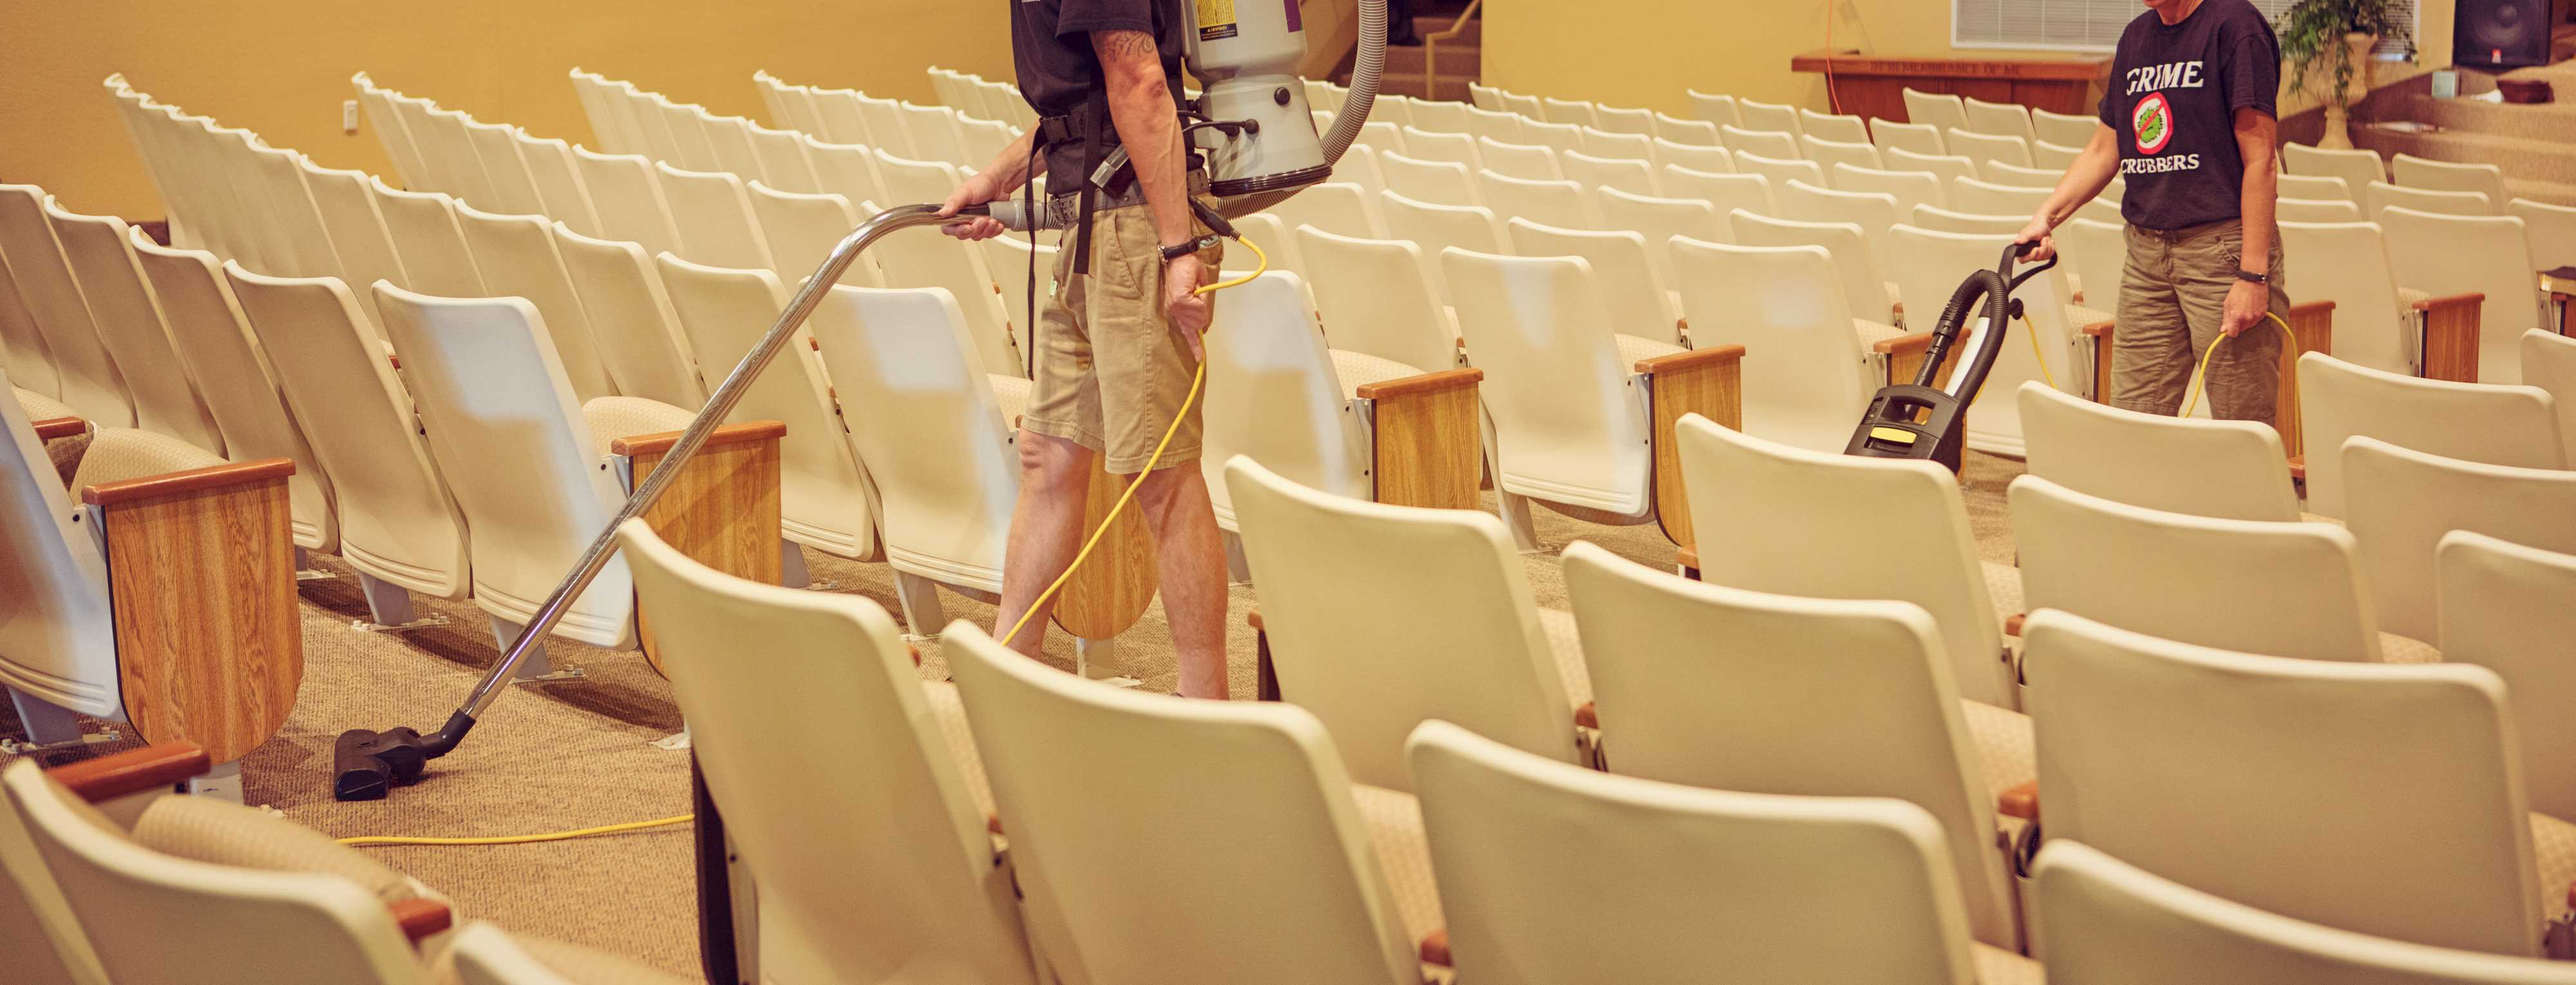 Commercial Cleaning in Springfield Missouri - Grime Scrubbers